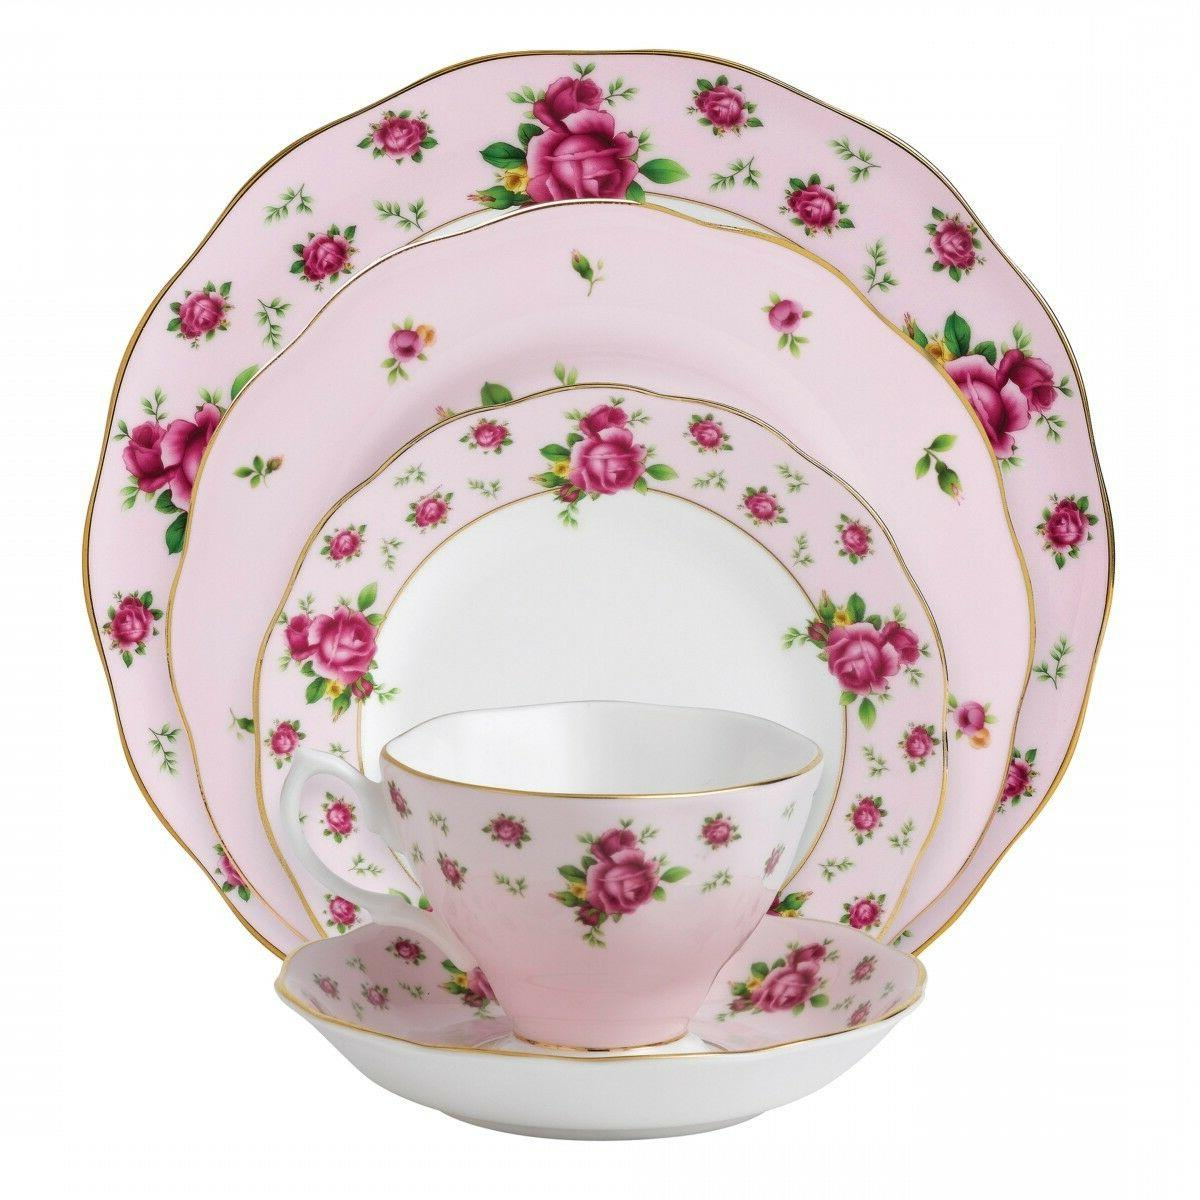 Royal Albert - New Country Roses Pink Vintage Formal - 5 Pc